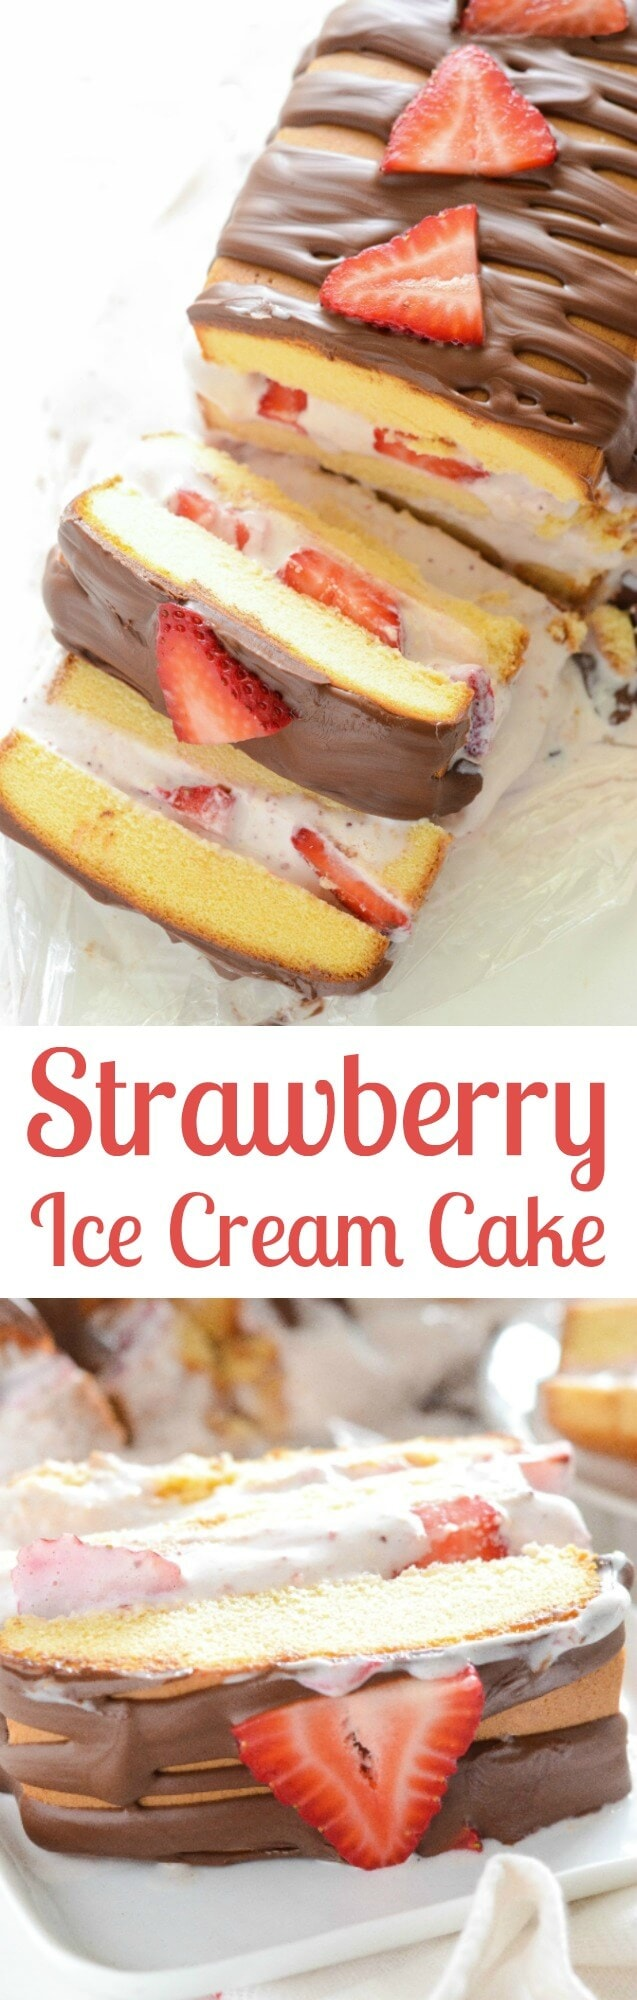 Strawberry Ice Cream Cake! An easy recipe using store bought pound cake, strawberry ice cream, fresh strawberries!